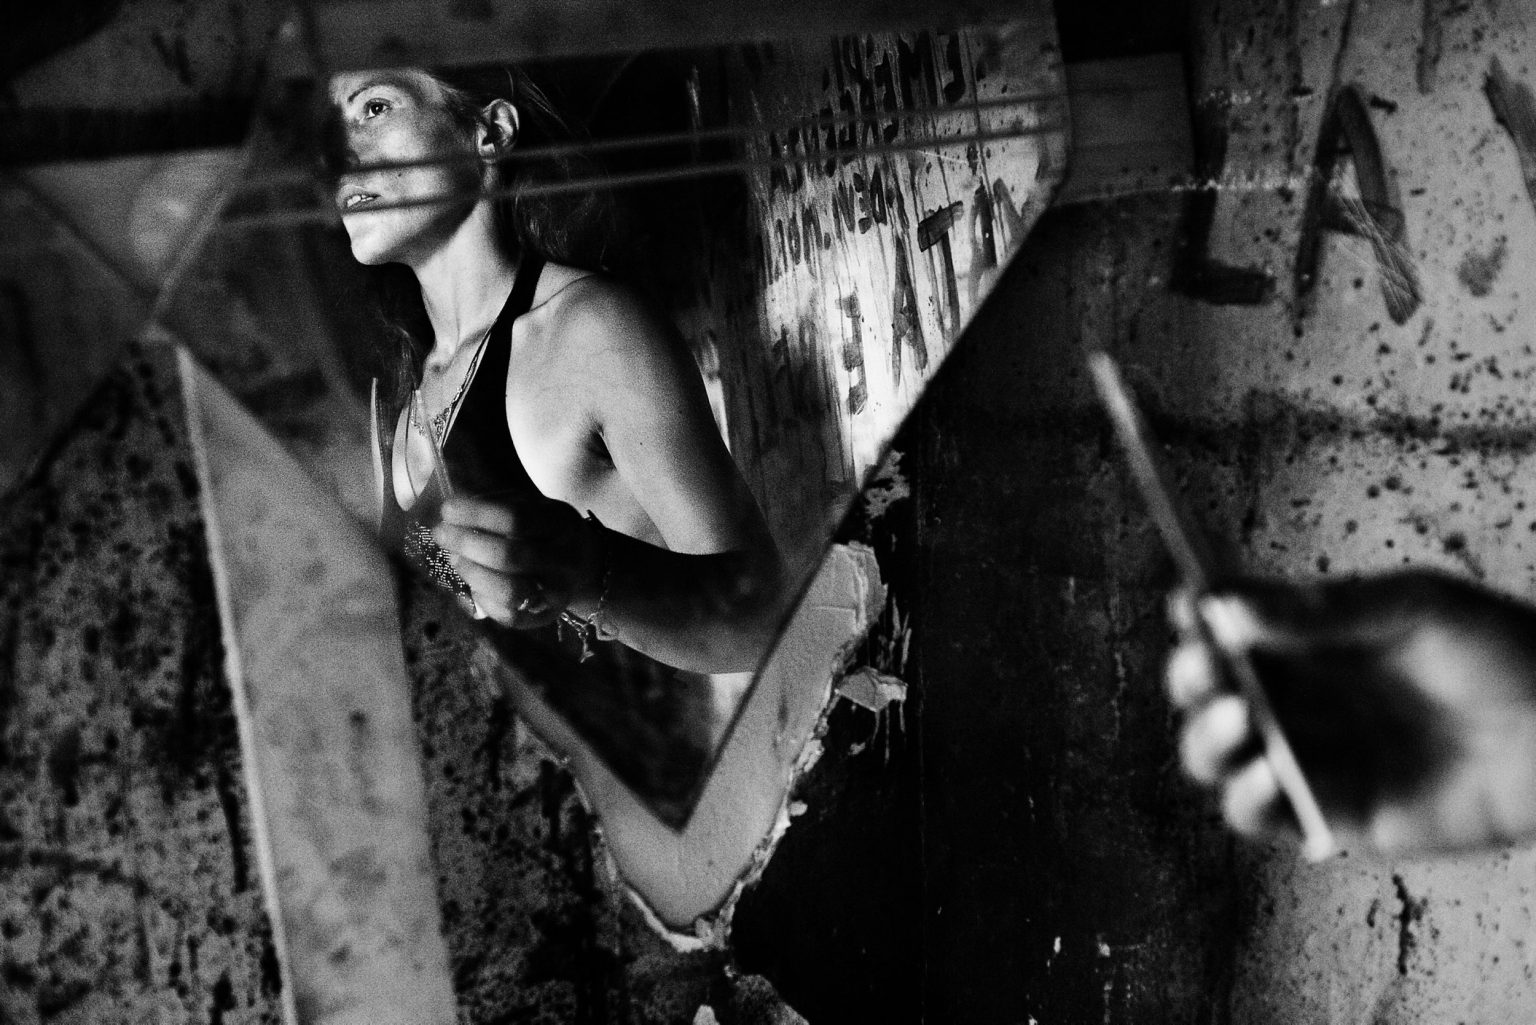 """Inside one of the housing blocks known as """"Le Vele"""", or Sails because of their shape.  Drug addict seconds before shooting a cocaine dose, in the abandoned houses that Camorra provide for  keep them away from the streets and do not alert the police. Scampia neighborhood. Naples, Italy, 2008"""